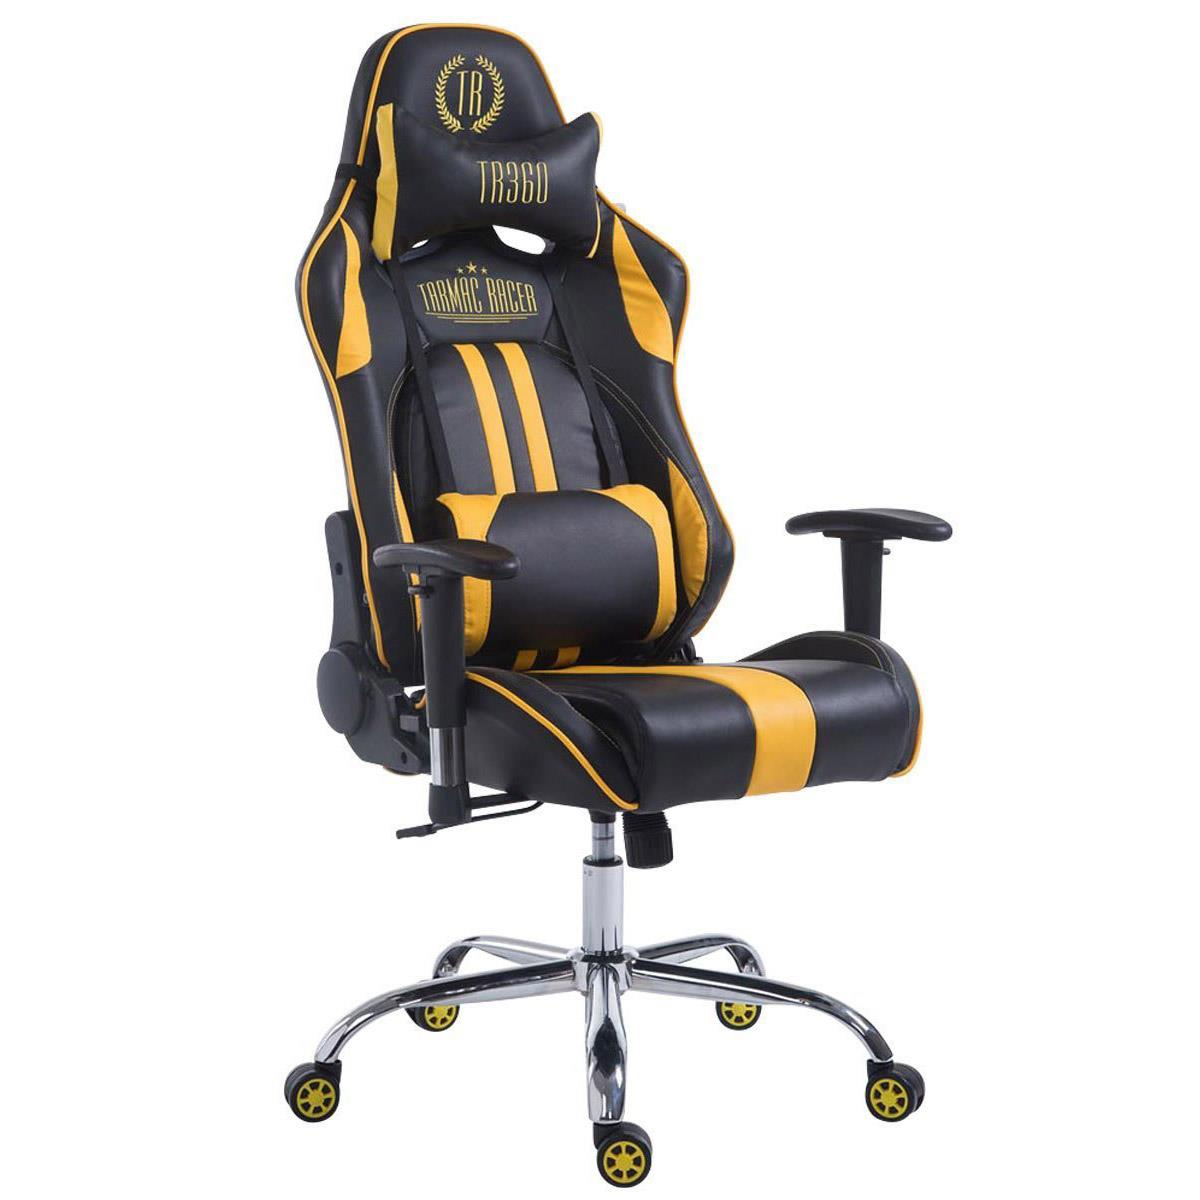 Silla Gaming LOGAN, Respaldo Reclinable, Cojines Incluidos, Base de Metal, En Negro/Amarillo